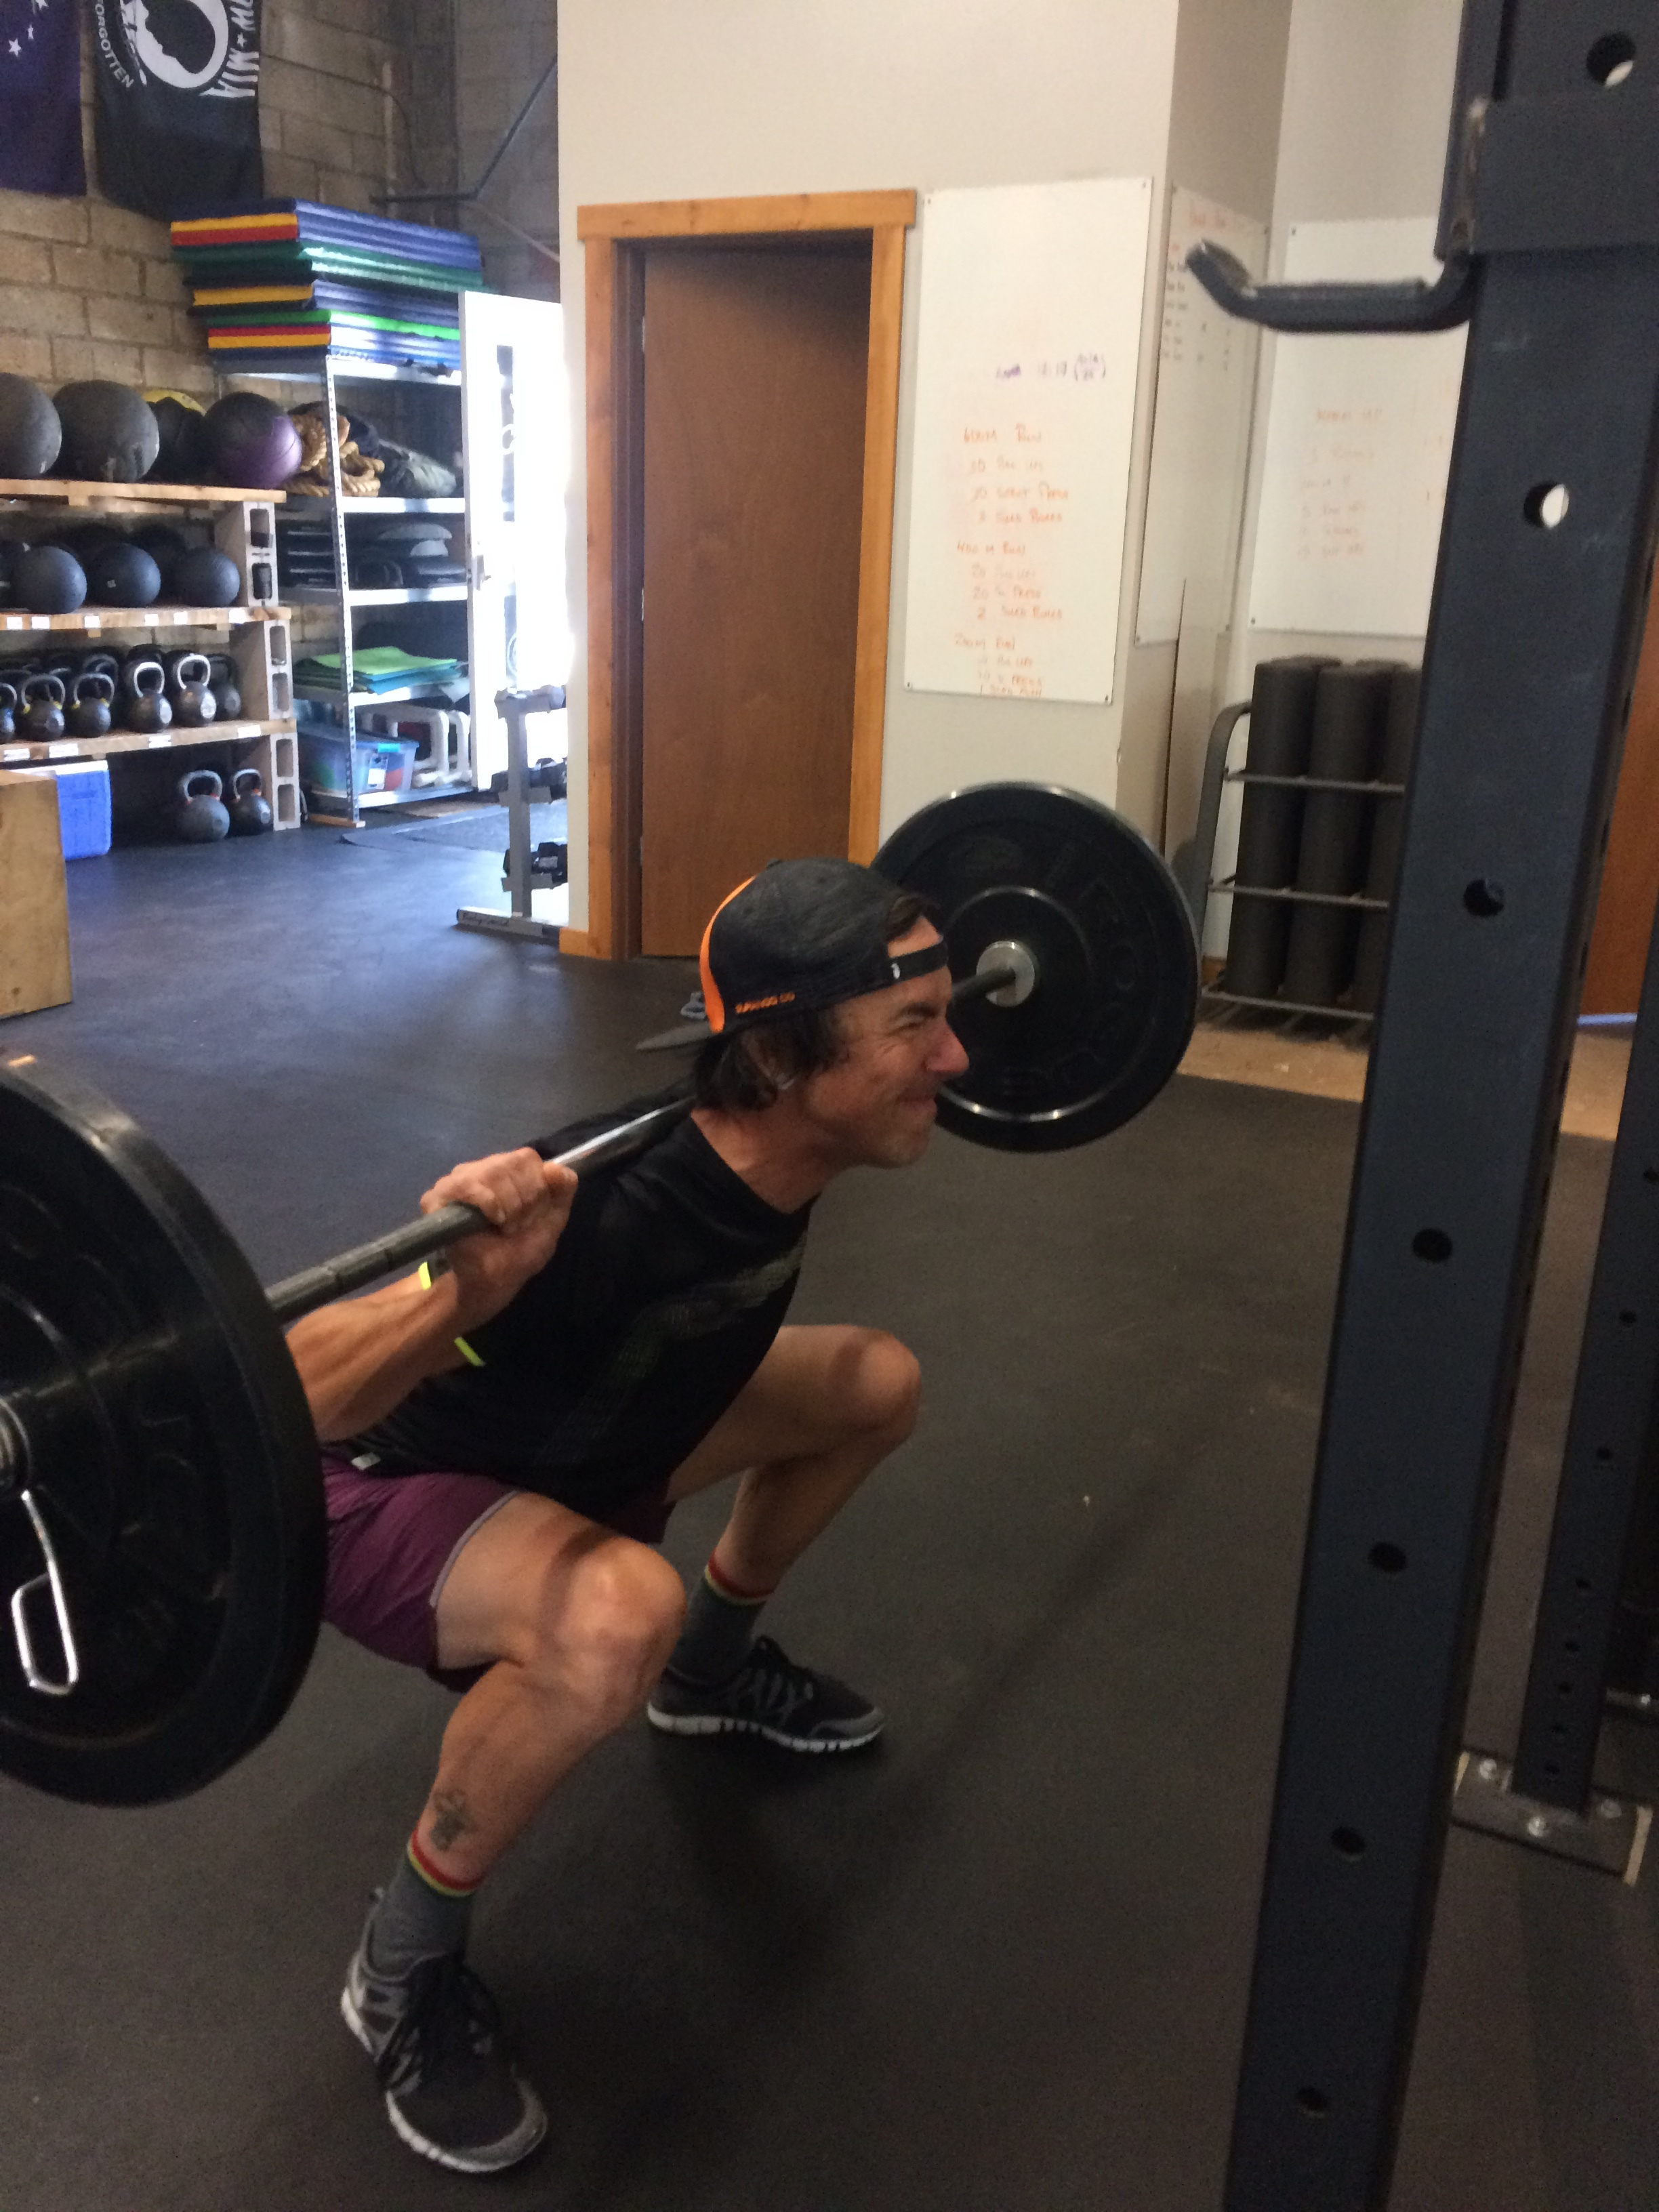 Nick is a pro mountain bike racer who knows that back squats equal better race results.